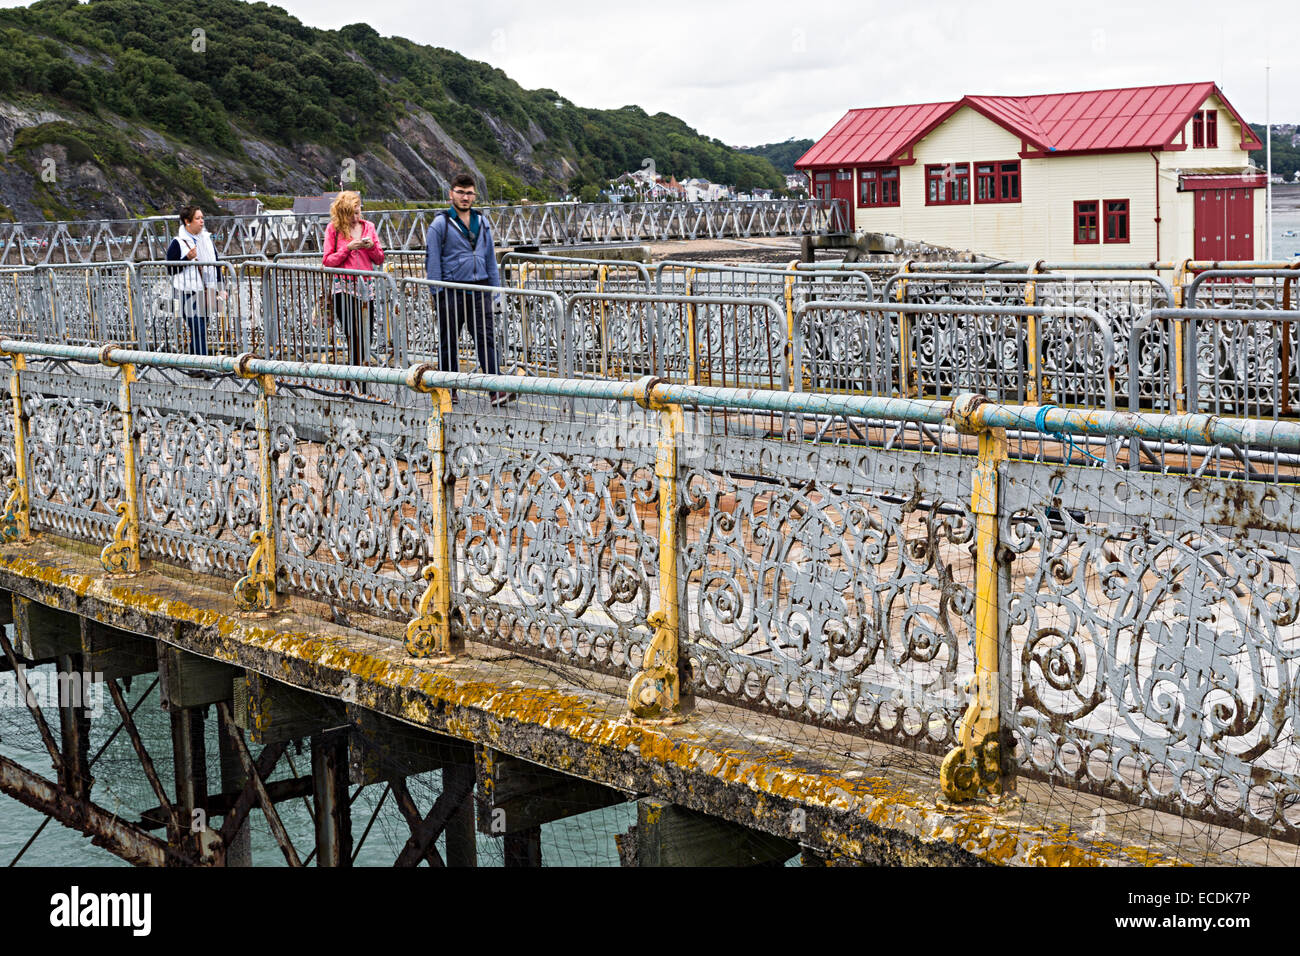 Railings in poor condition on the pier at Mumbles, Swansea, Wales, UK - Stock Image